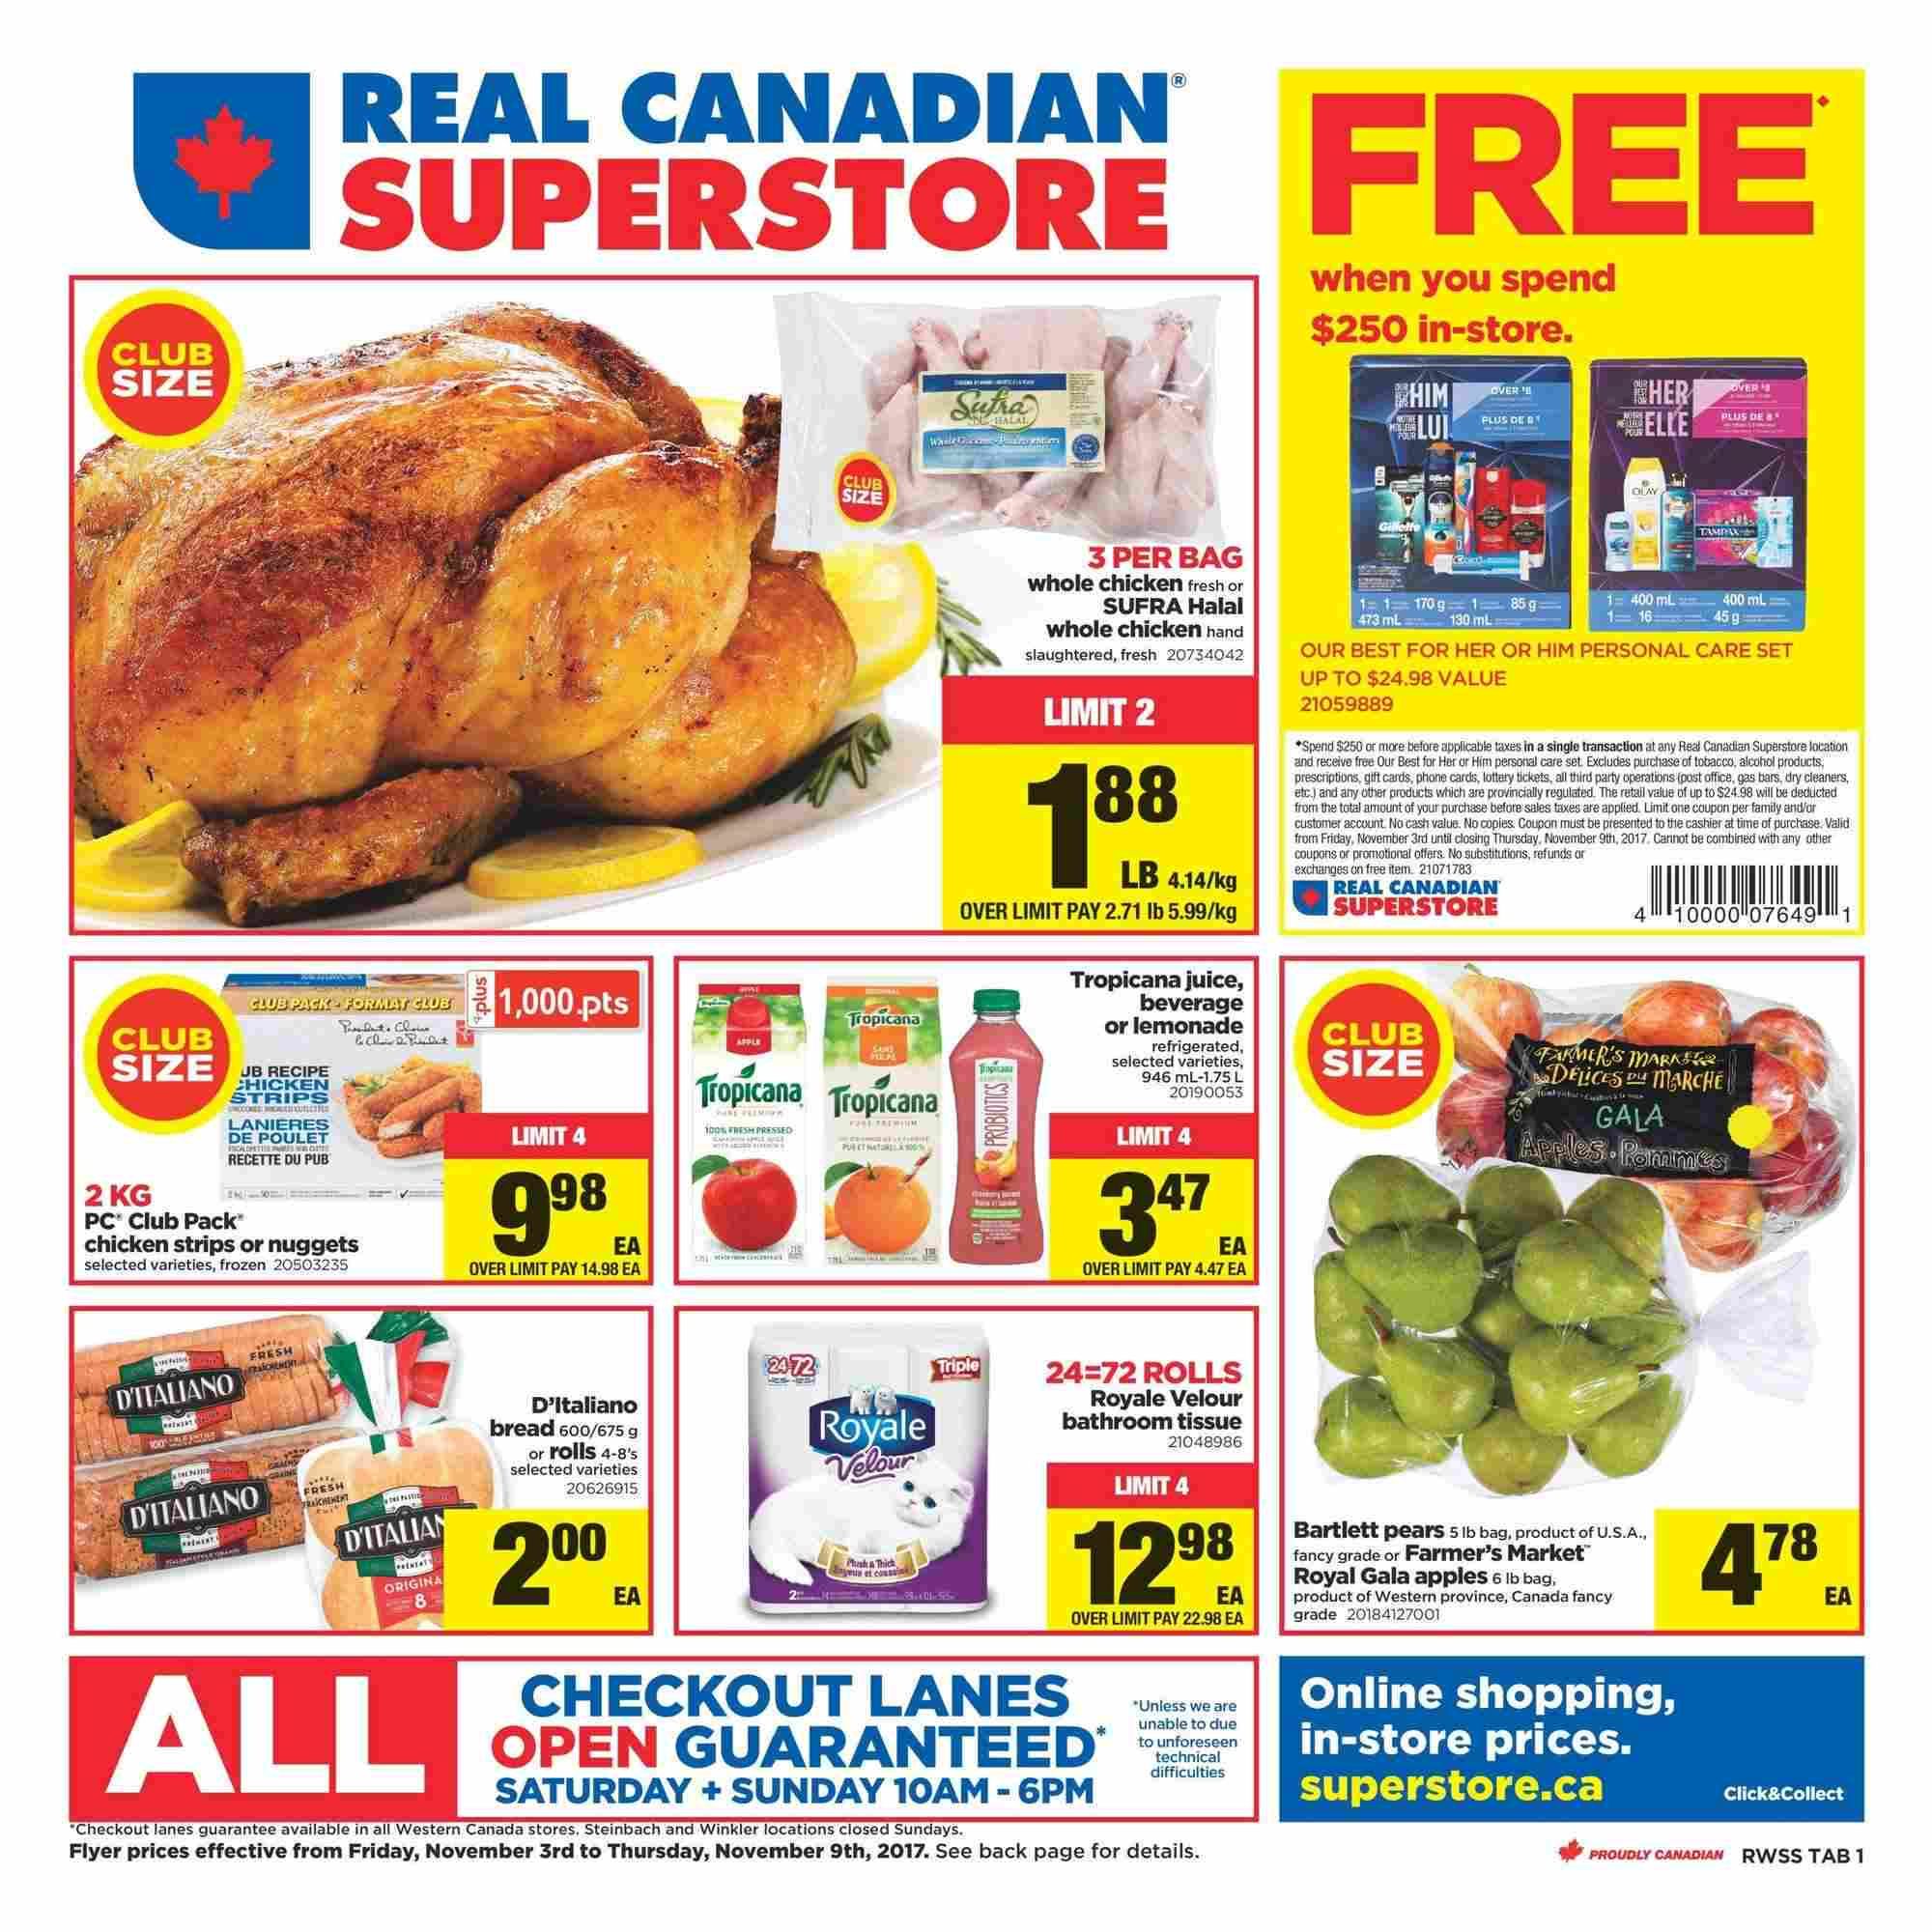 Real canadian superstore photo studio prices Store Info B H Photo Video